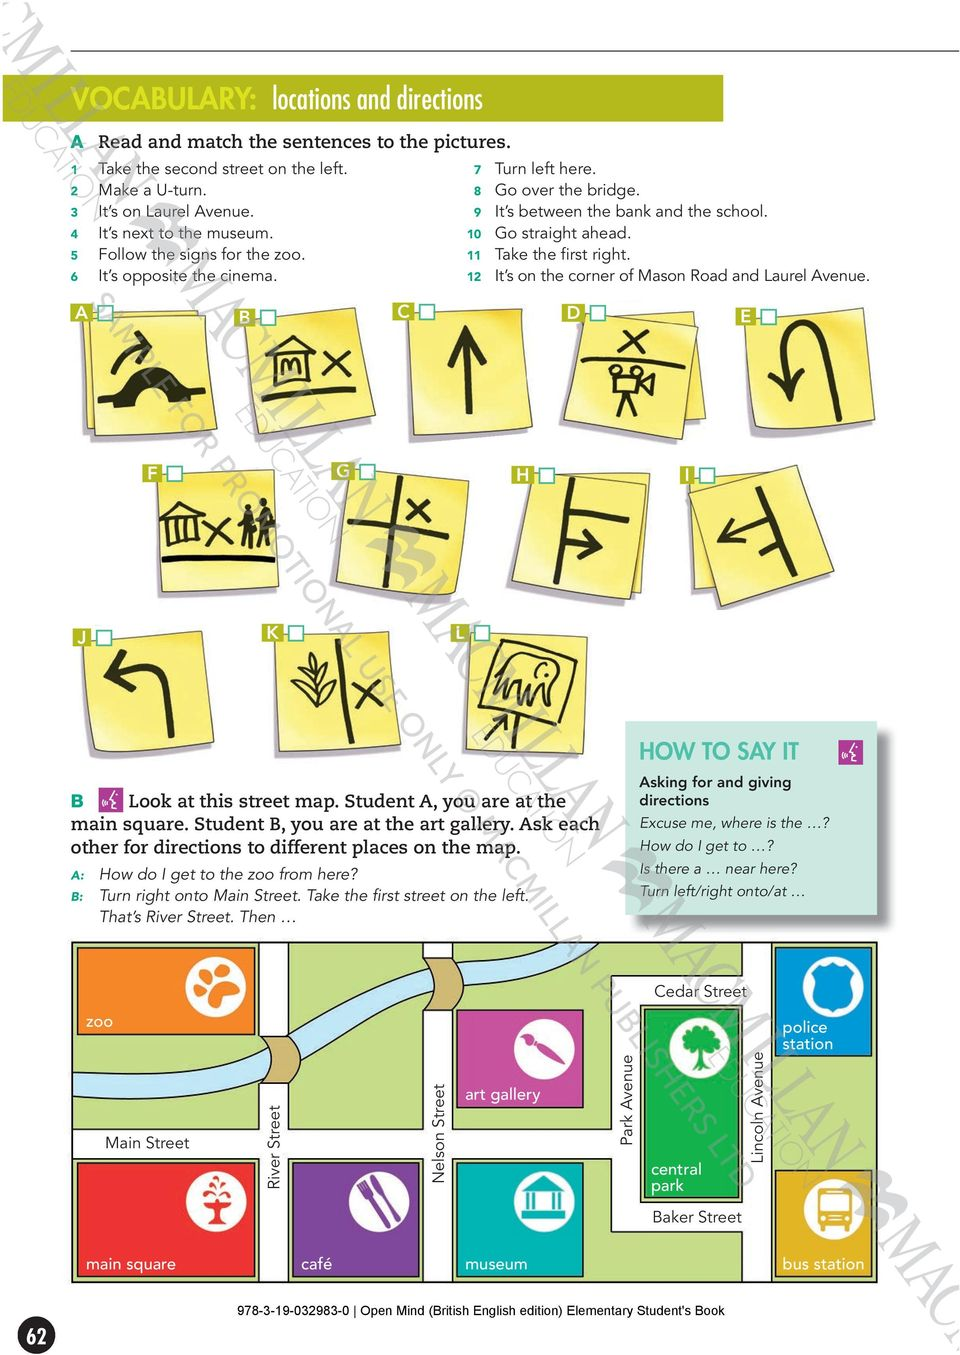 12 It s on the corner of Mason Road and Laurel Avenue. A B C D E F G H I J K L B Look at this street map. Student A, you are at the main square. Student B, you are at the art gallery.